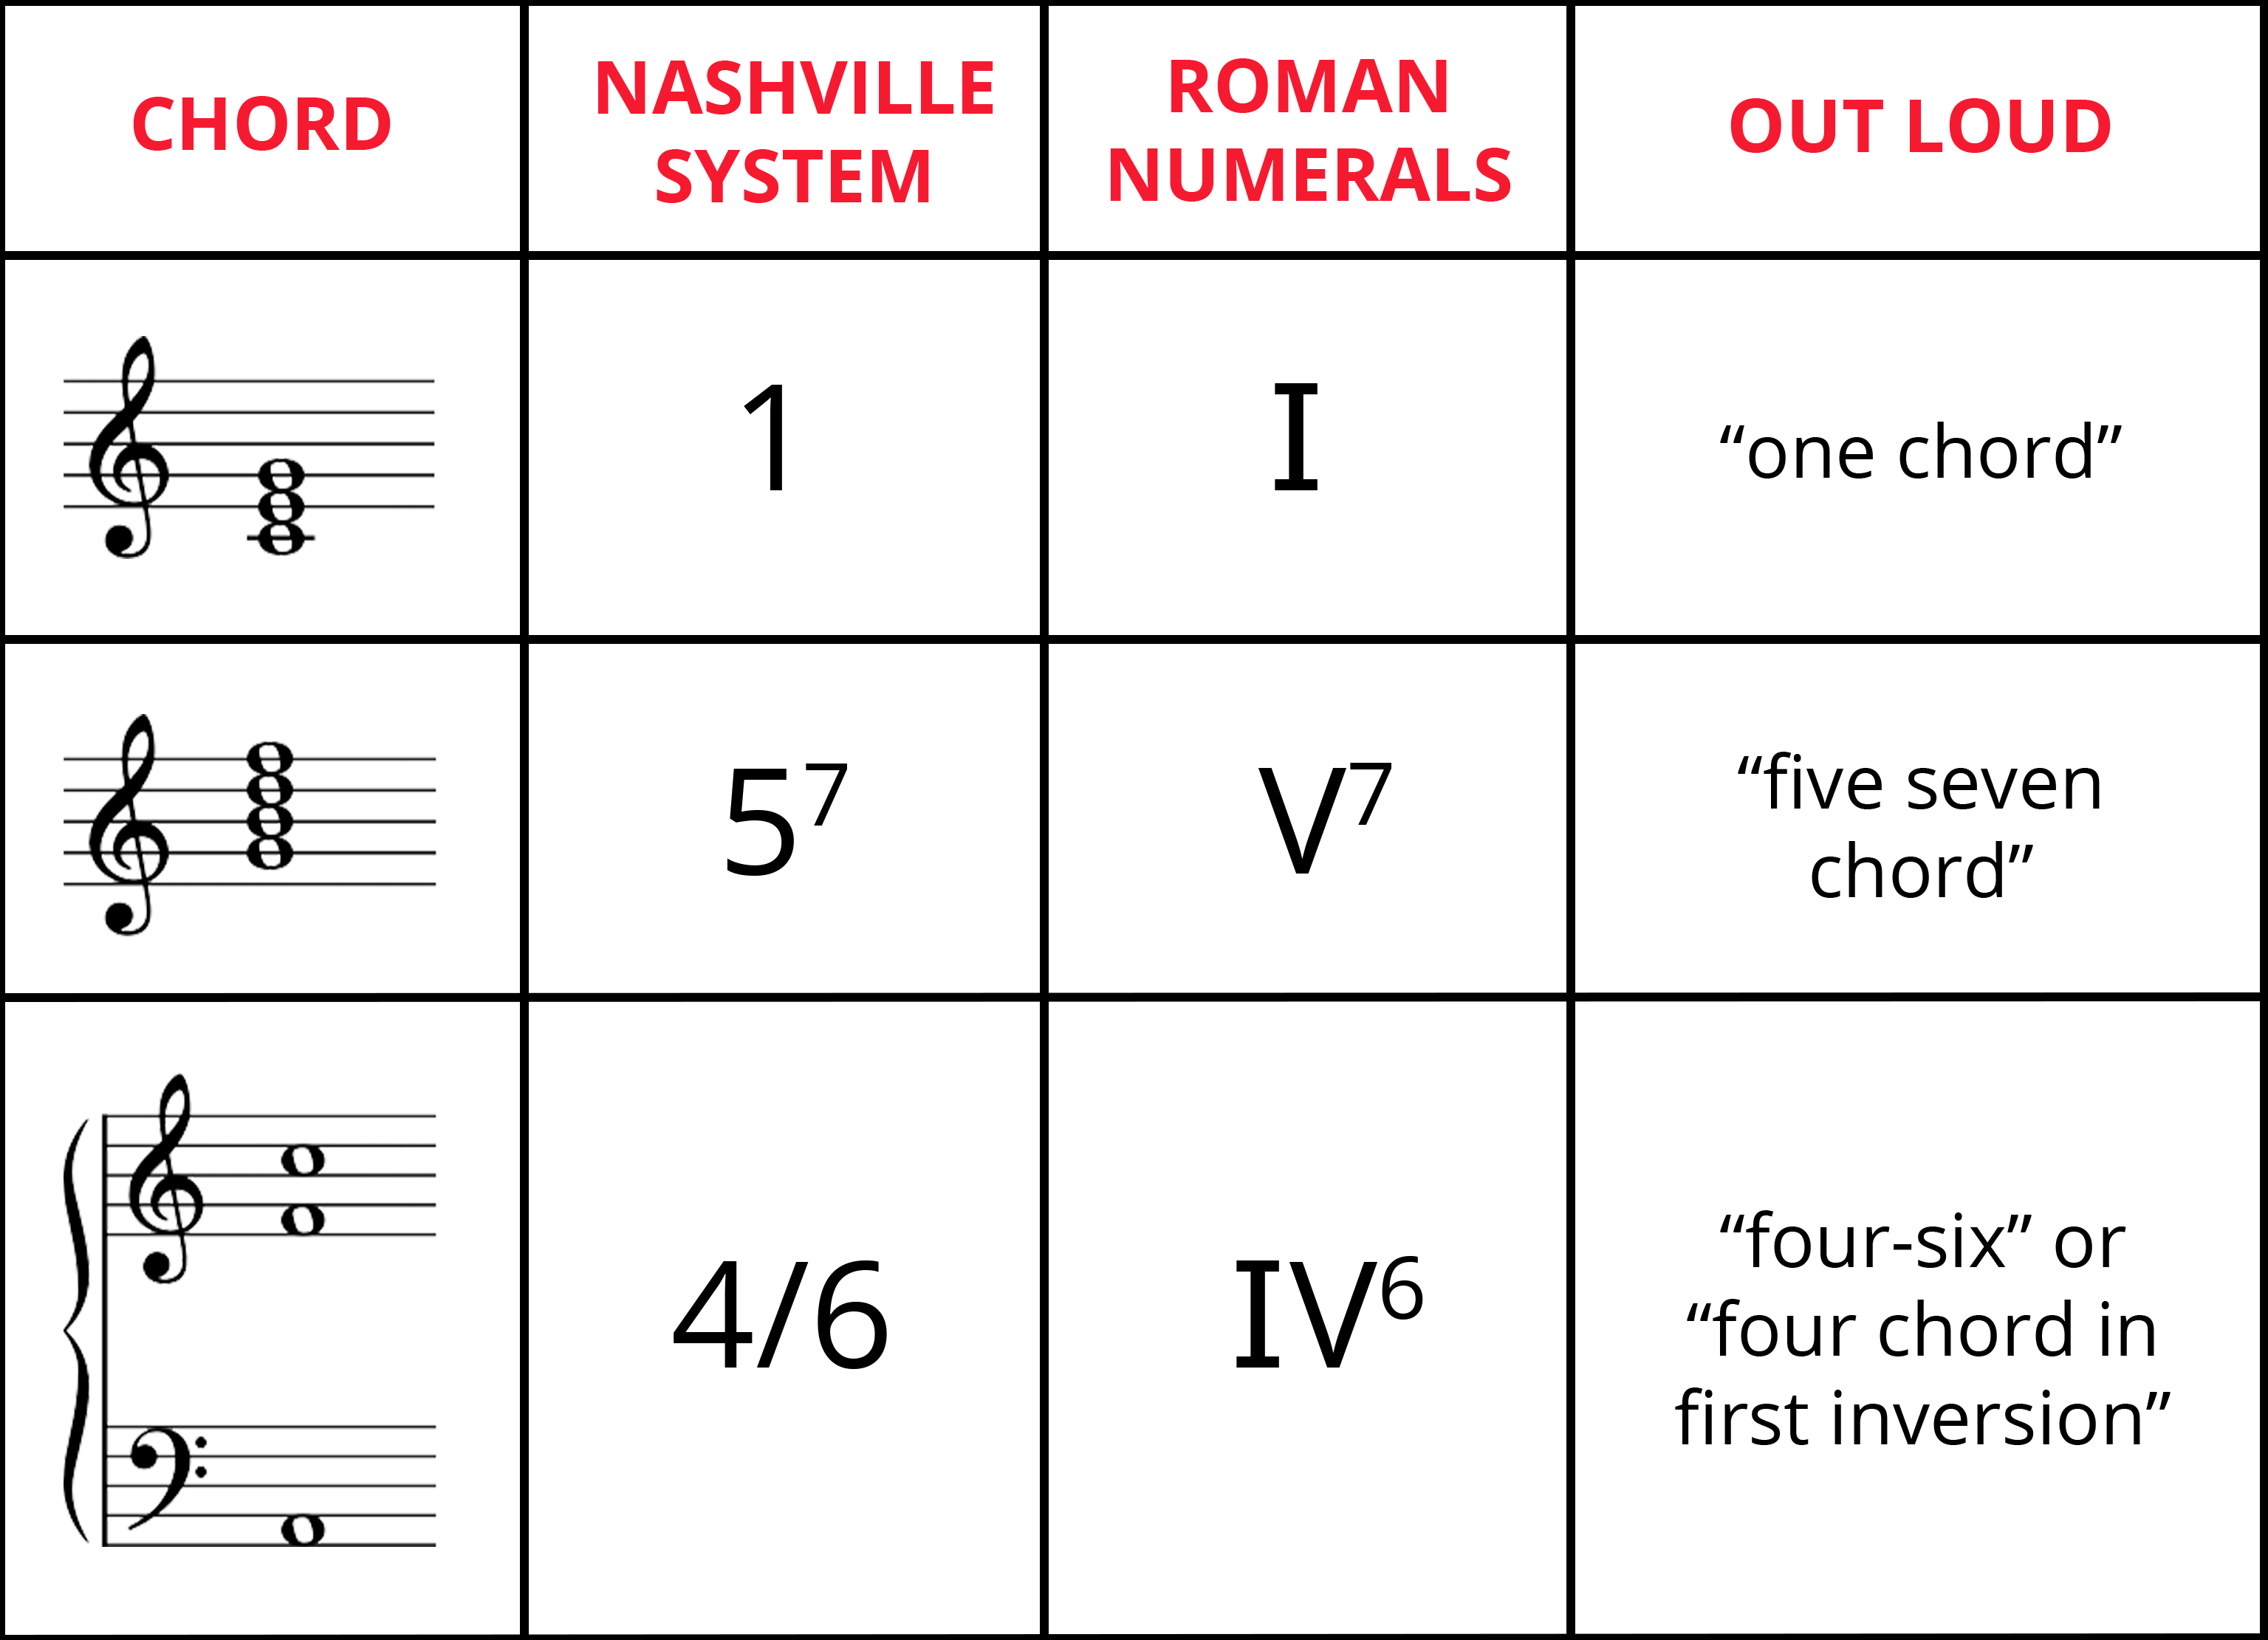 """Table summarizing what a chord looks like on standard notation, its notation in Nashville system, its notation in Roman numerals, and how it's read out loud. Row 1: 1 chord, I chord, """"one chord."""" Row 2: 5-7 chord, V-7 chord, """"five seven chord."""" Row 3: 4/6 chord, IV-6 chord, """"four six"""" or """"four chord in first inversion."""""""